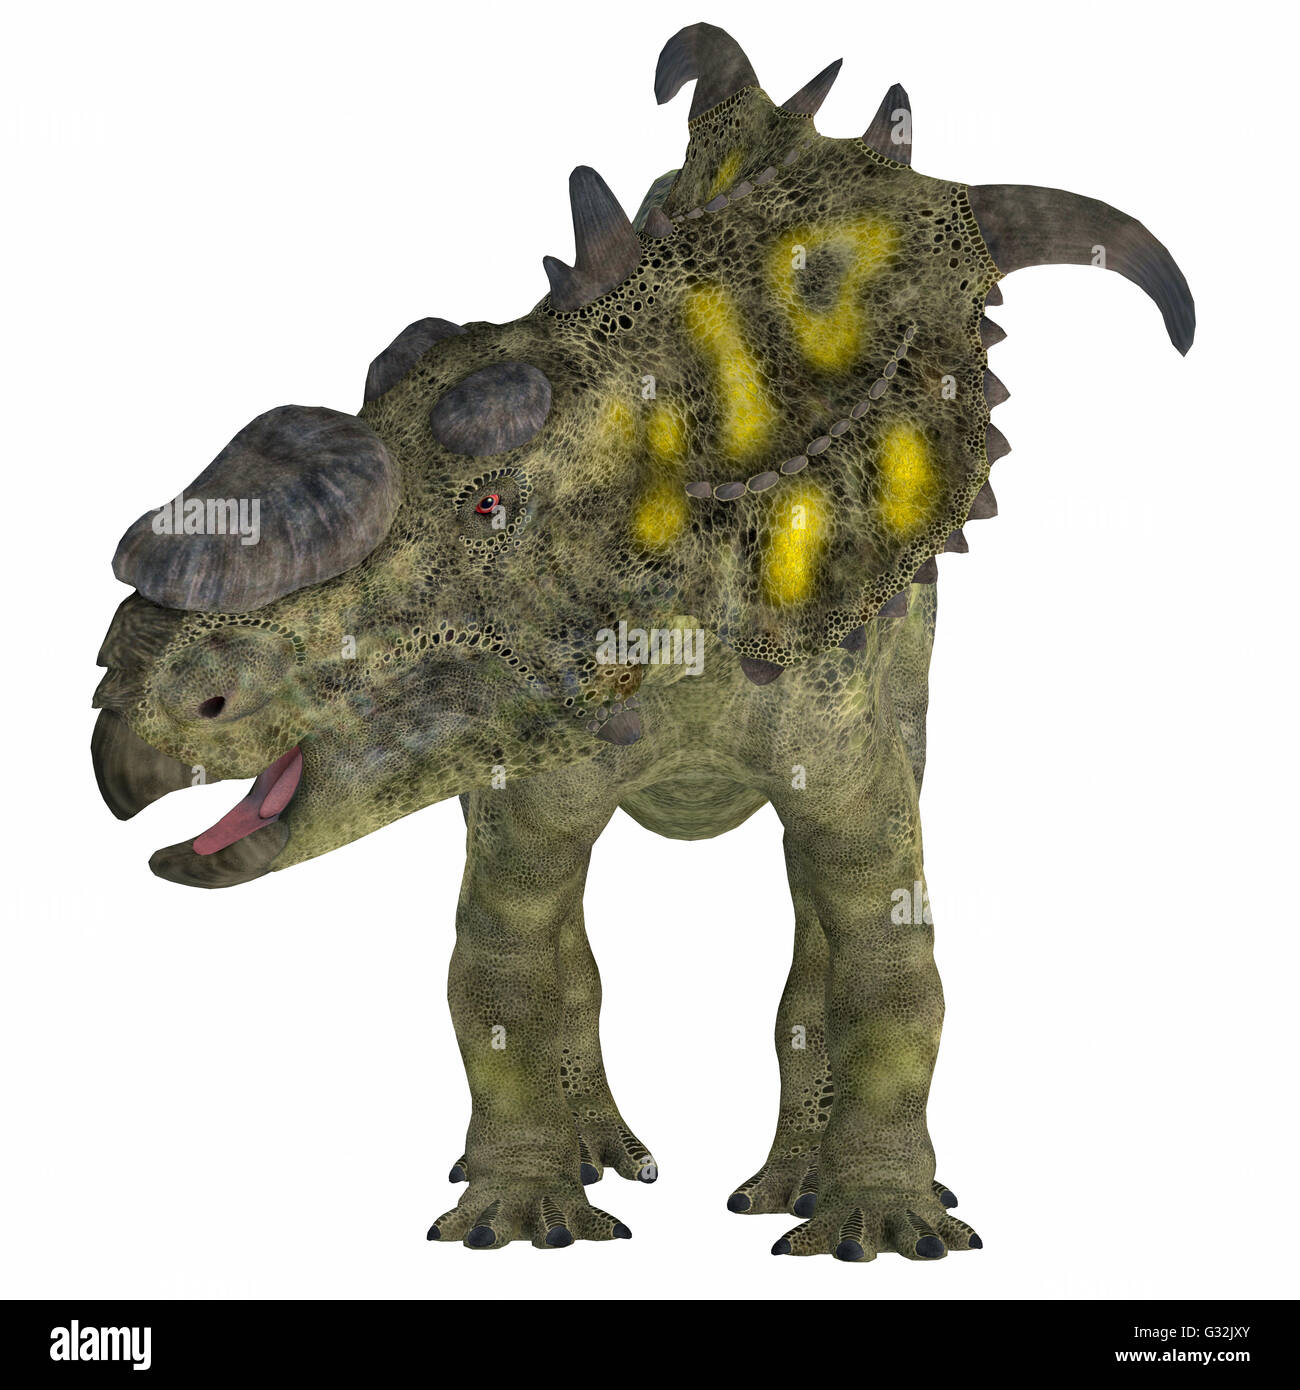 Pachyrhinosaurus was a ceratopsid herbivorous dinosaur that lived in the Cretaceous Period of Alberta, Canada. Stock Photo